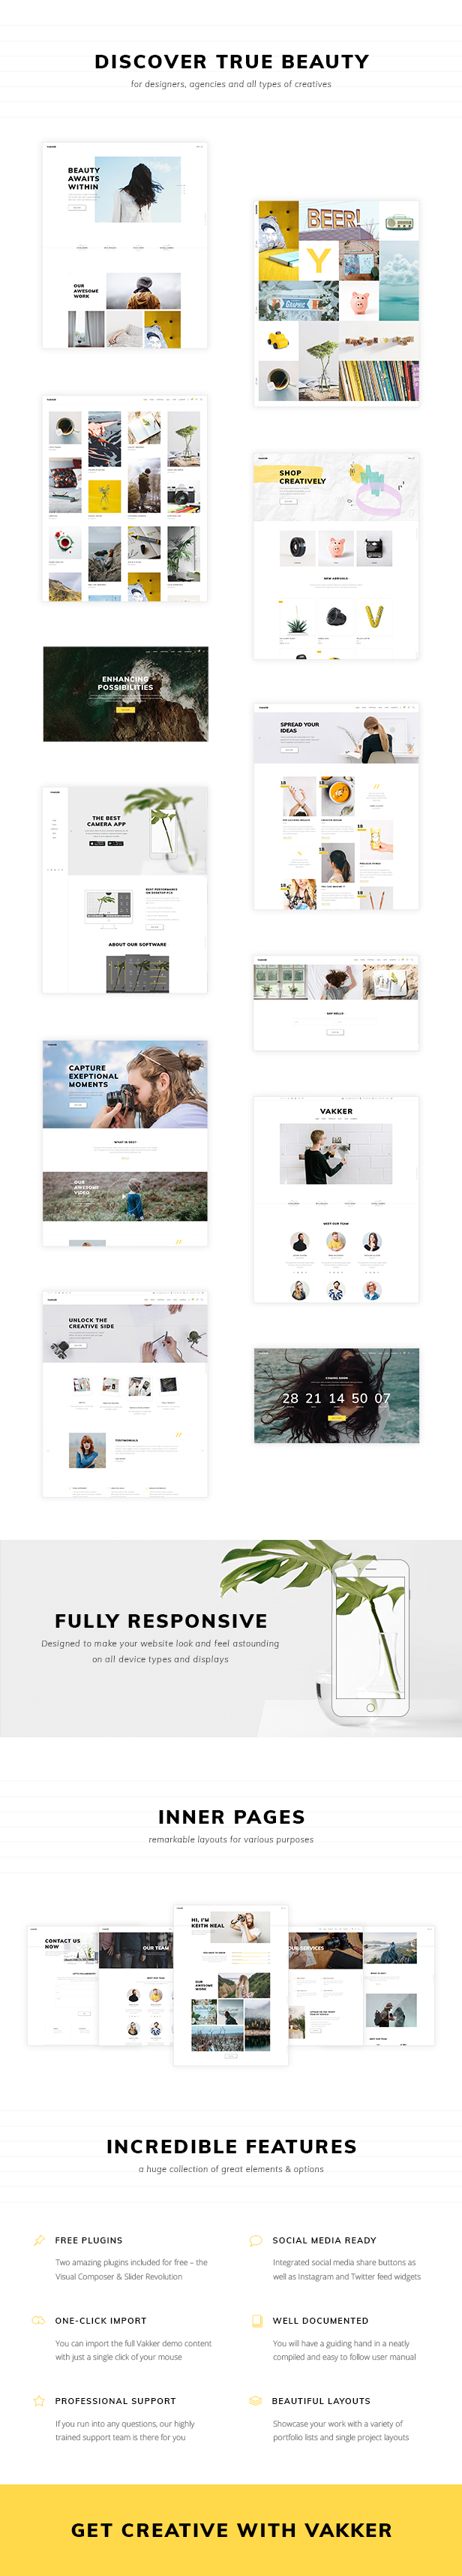 WordPress theme Vakker - A Creative Theme for Designers and Agencies (Creative)